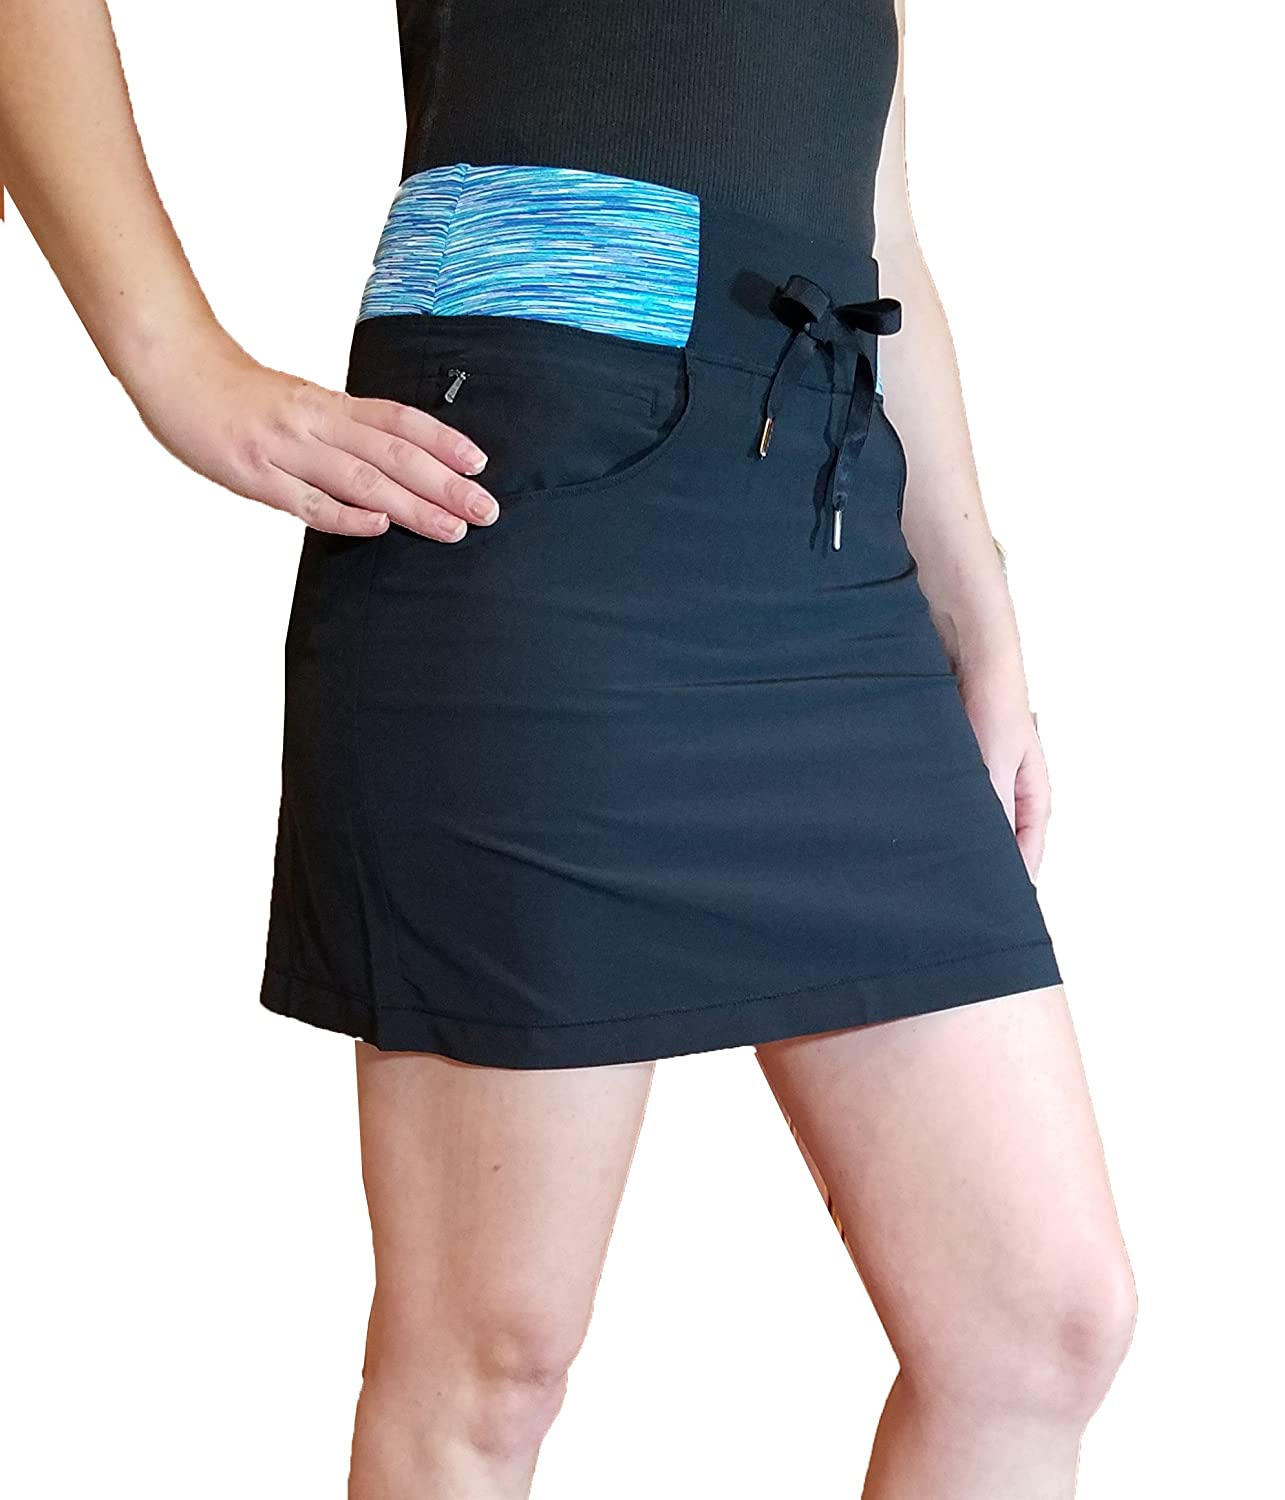 Tuff Women's Athletic Active Yoga Skort